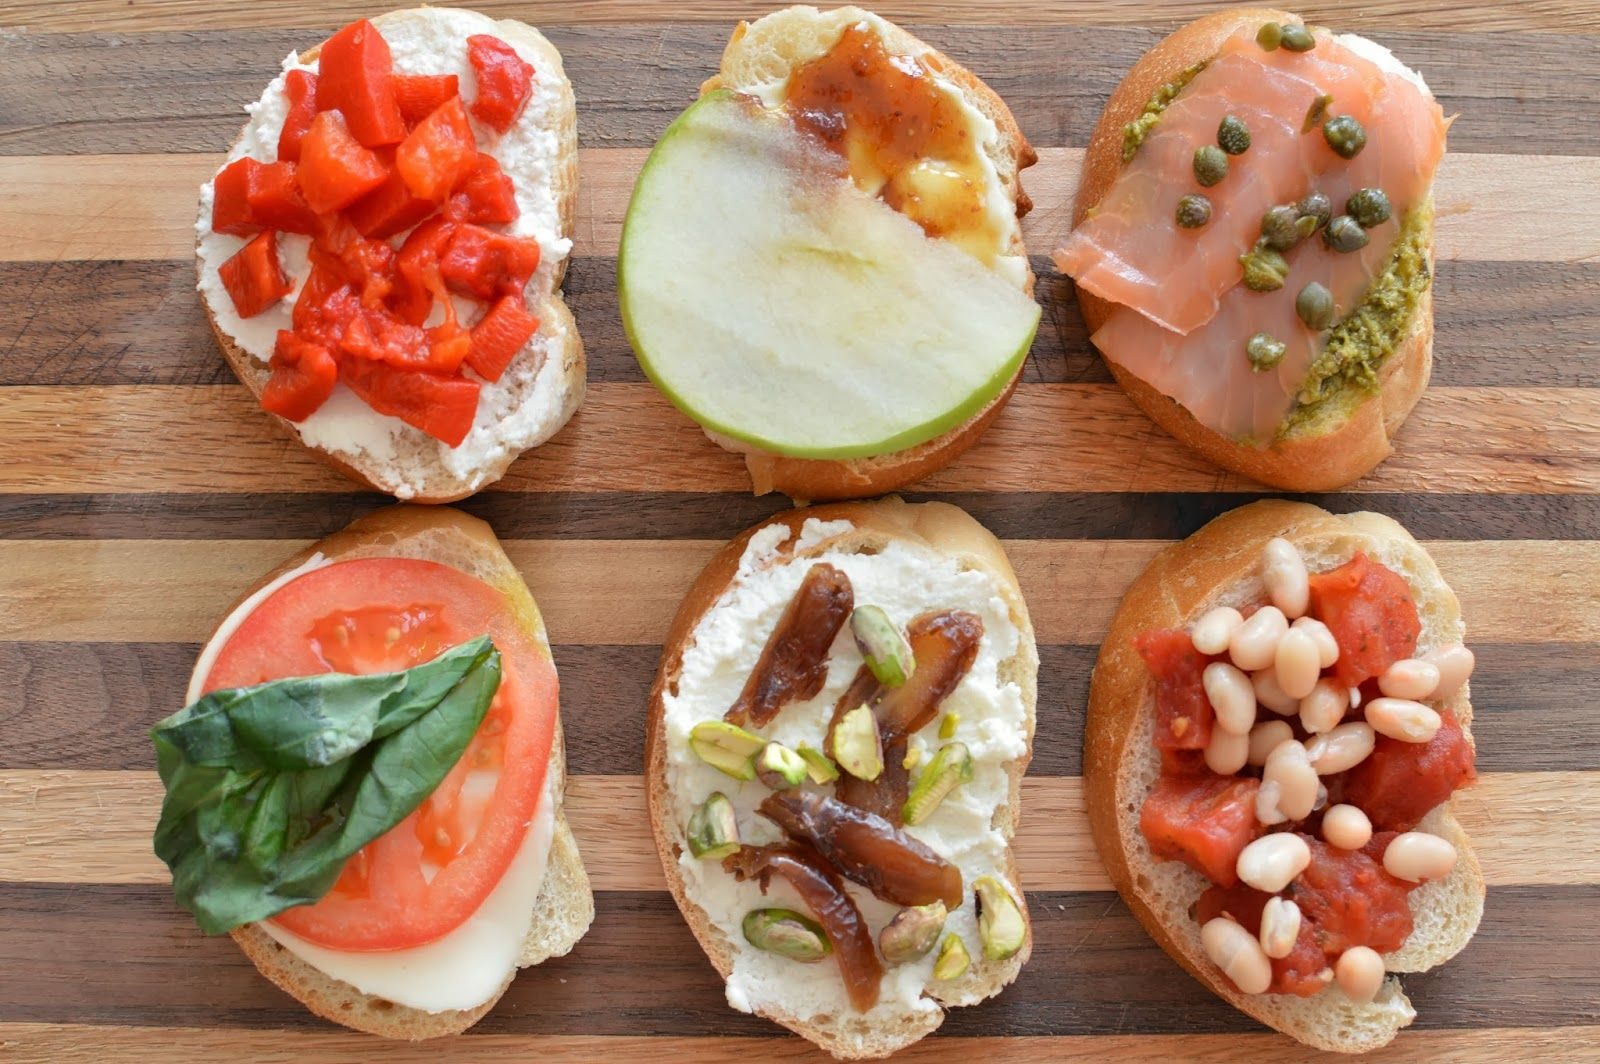 A Spoonful of Lovely: Bruschetta Board a tribute to the awesome bruschetta served at Postino's in Phoenix. Make at home recipes for people that can't go to Postino's.